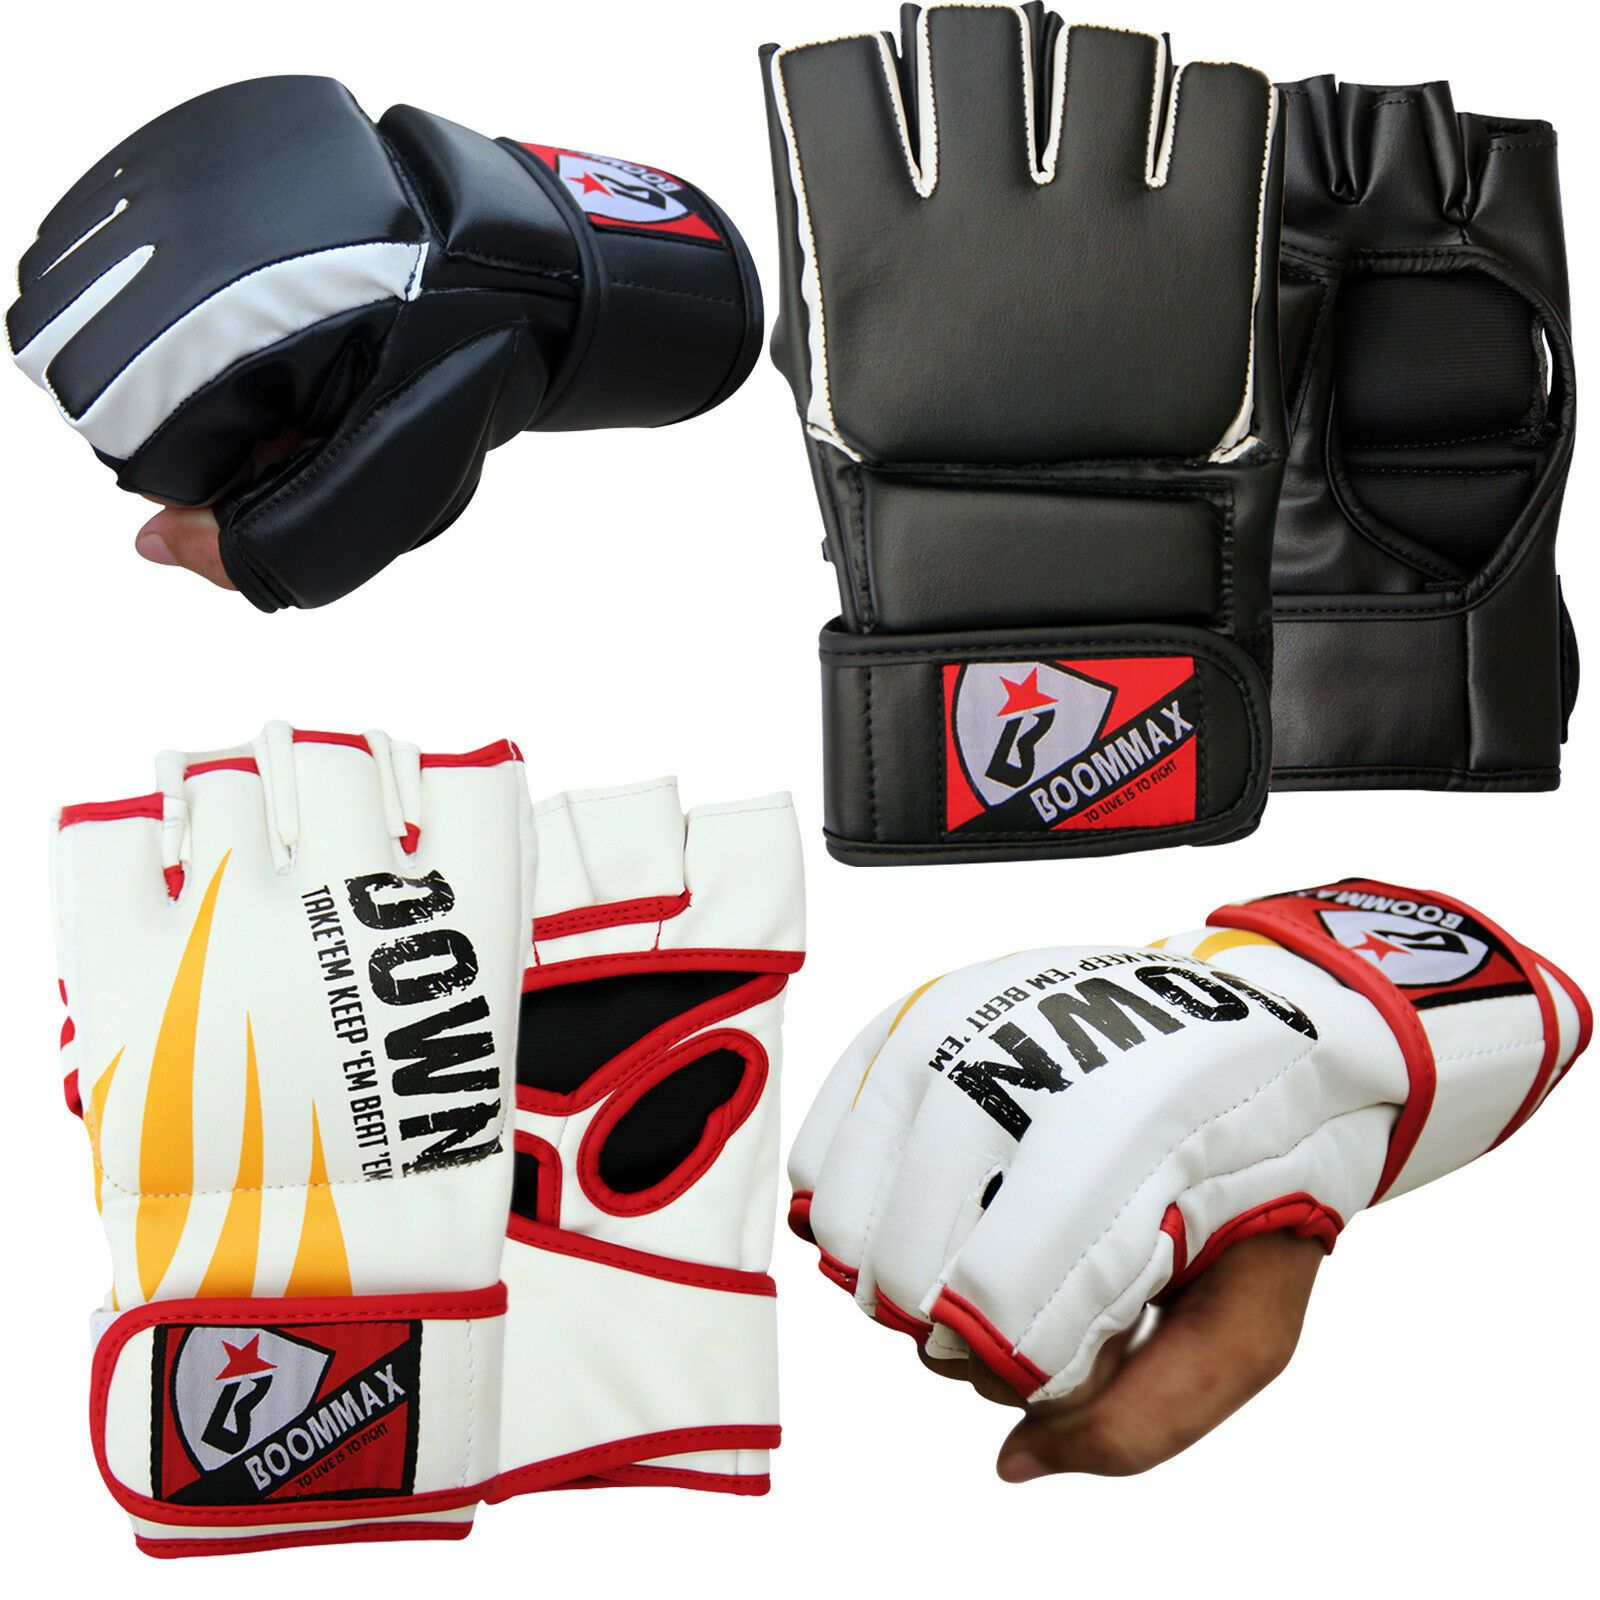 Last Punch Boxing MMA Gloves Punching Bag Training Kickboxing Fight Sparring UFC